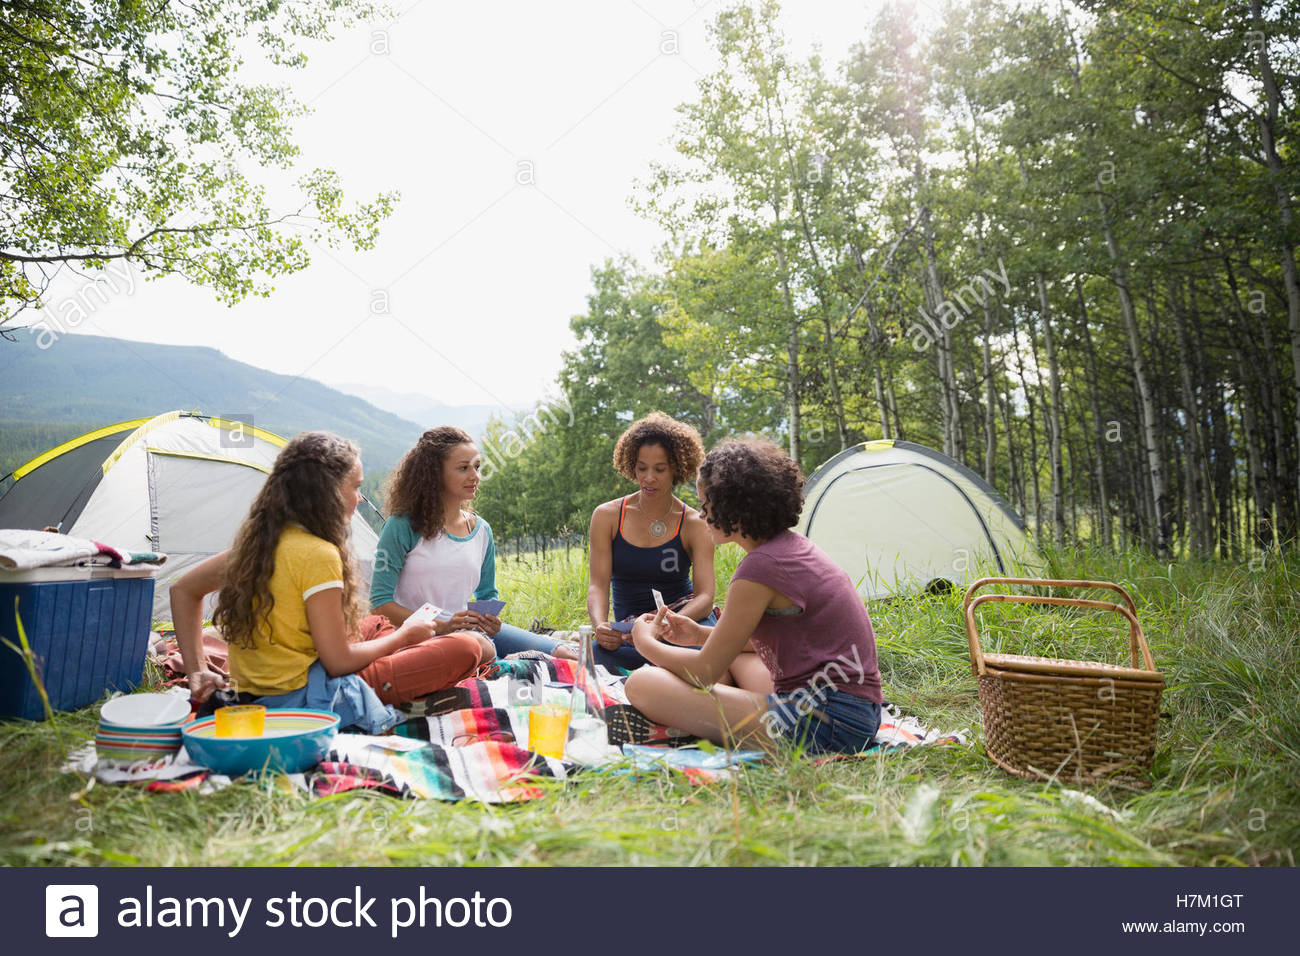 Mother and daughters playing card game on blanket at rural campsite - Stock Image